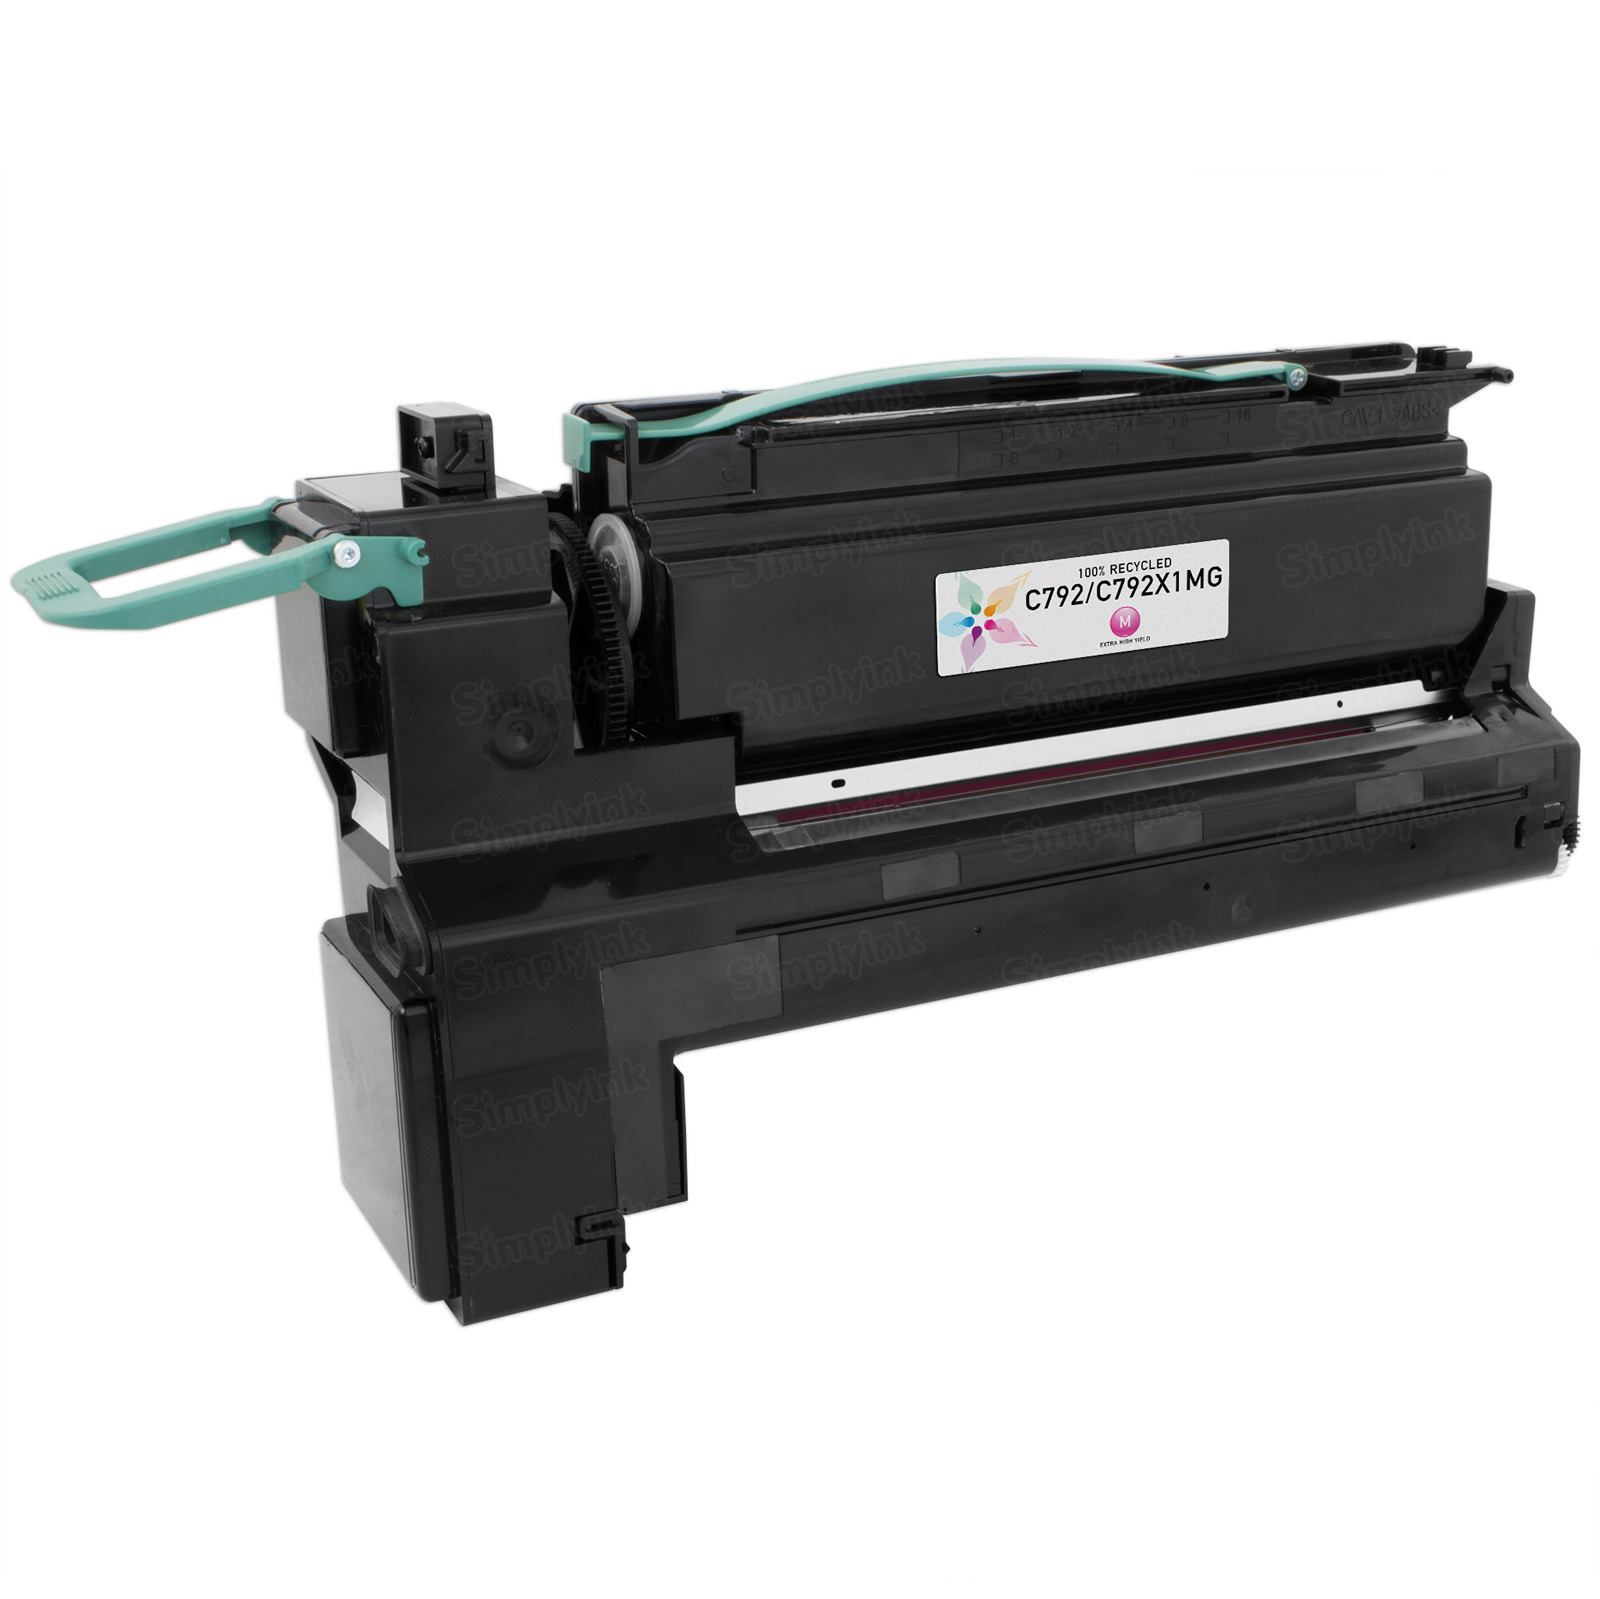 Lexmark Remanufactured Extra HY Magenta Toner, C792X1MG (C792)